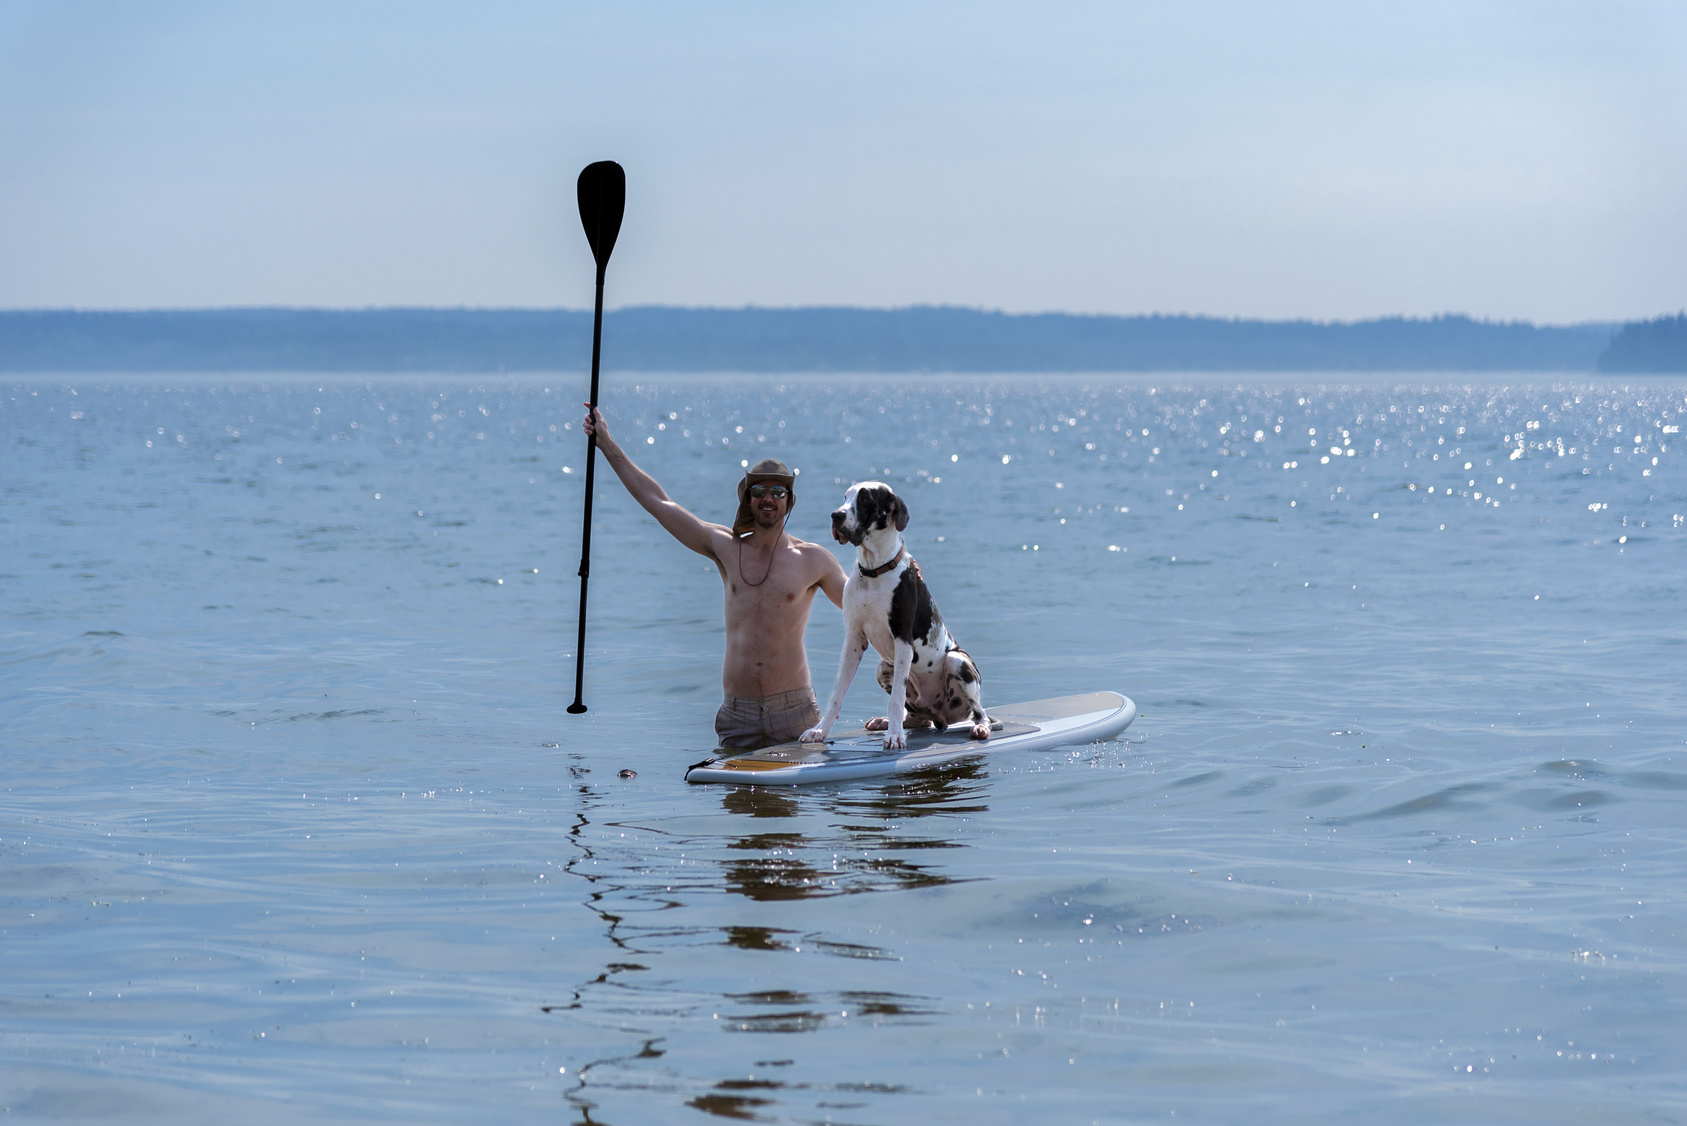 Man teaching harlequin great dane dog how to use a standup paddle board on the sea